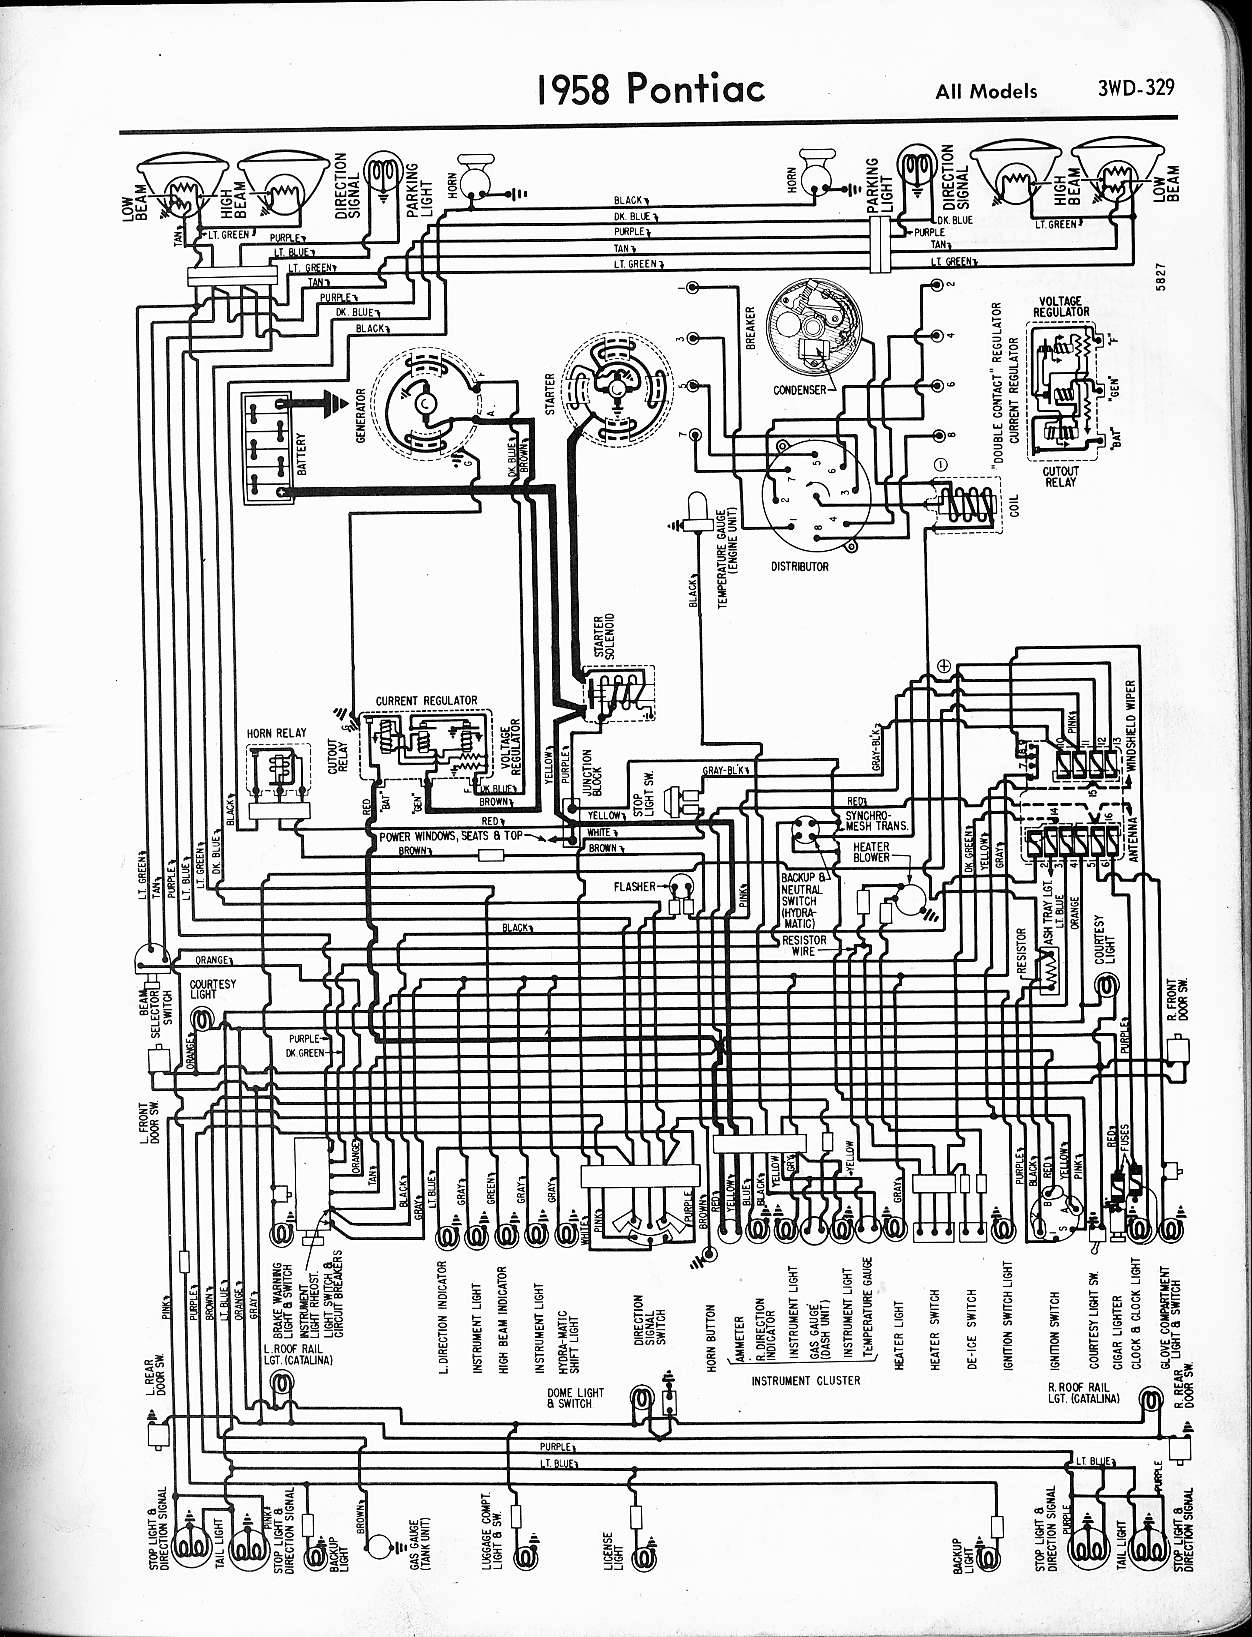 hight resolution of 1960 pontiac wiring diagram wiring diagram meta 2000 pontiac montana wiring diagram pontiac wiring 1957